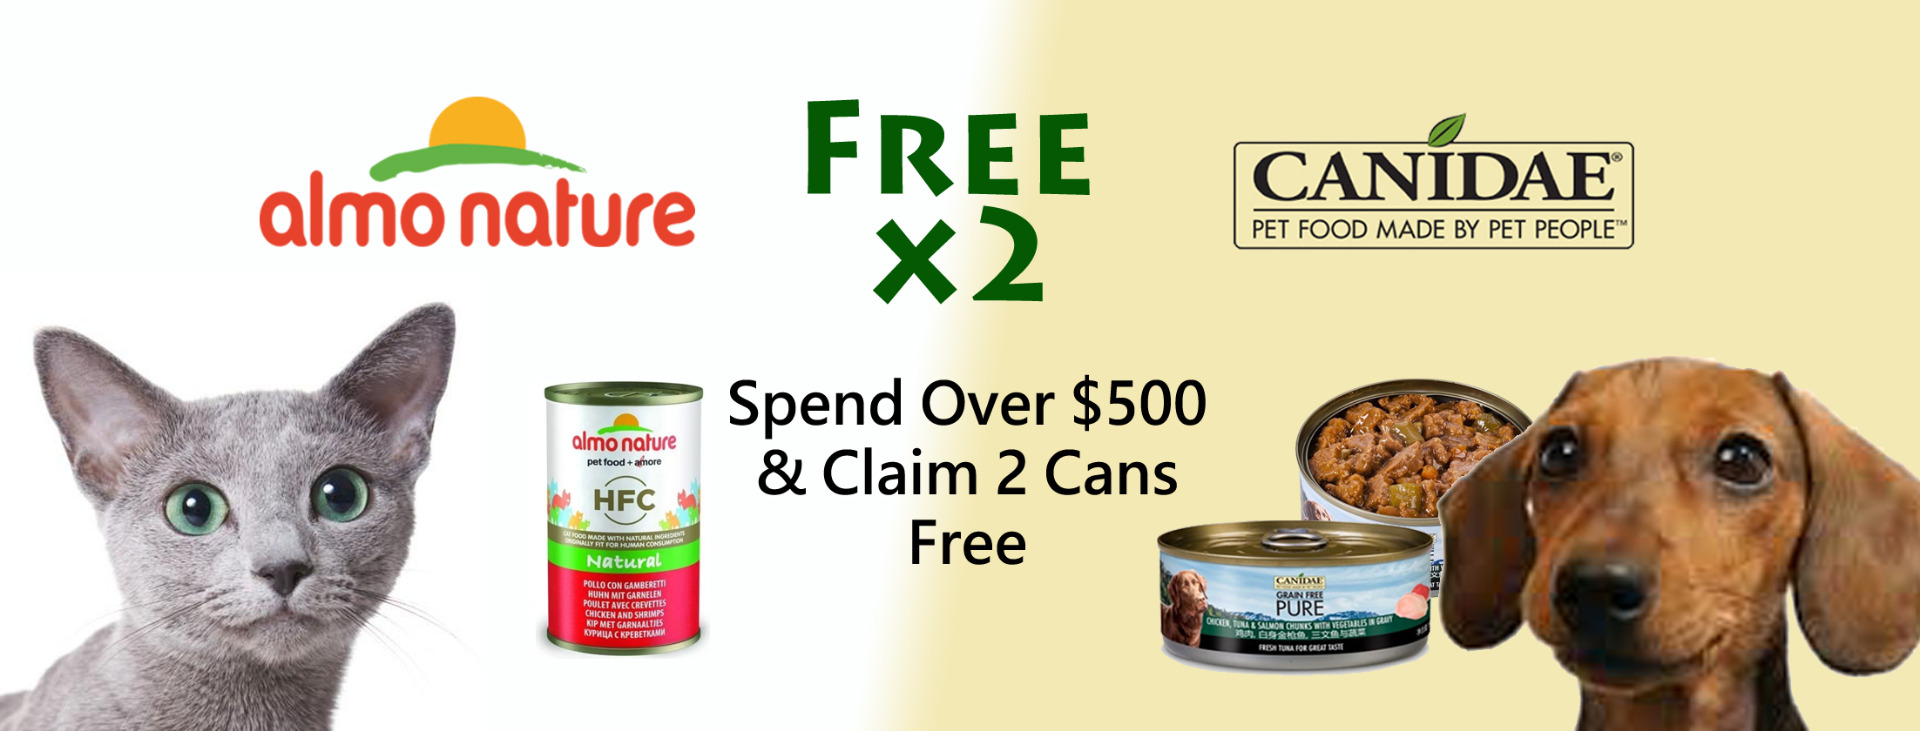 Spend Over $500 & Claim 2 Cans Free